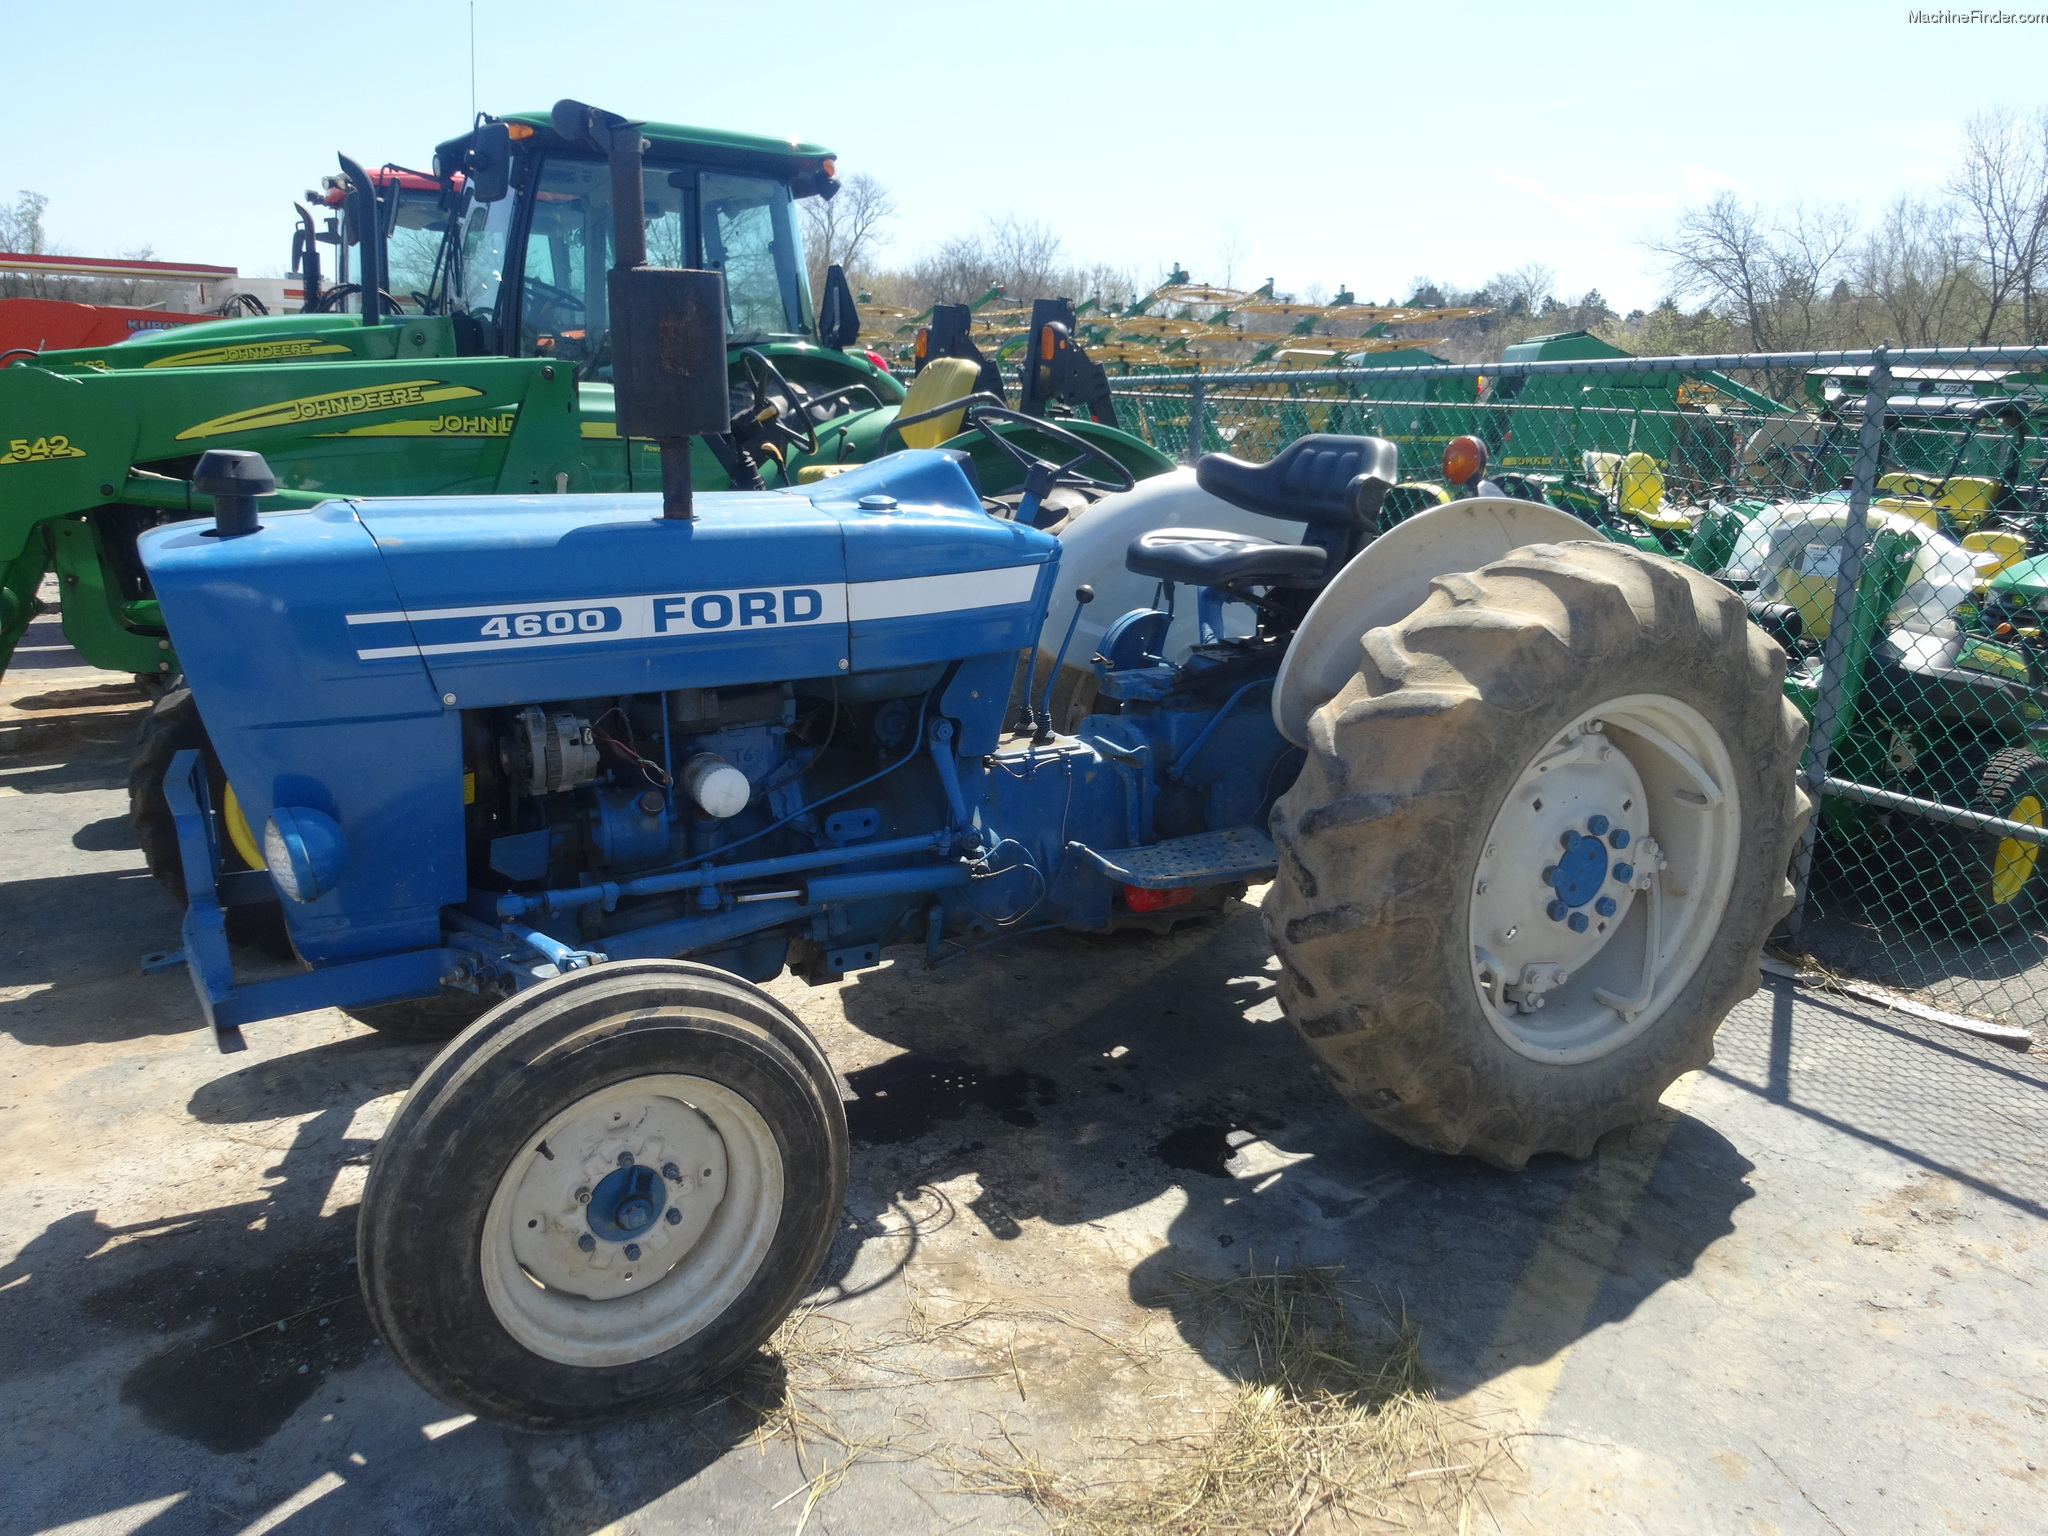 Ford 4600 Tractor Information : Ford tractors utility hp john deere